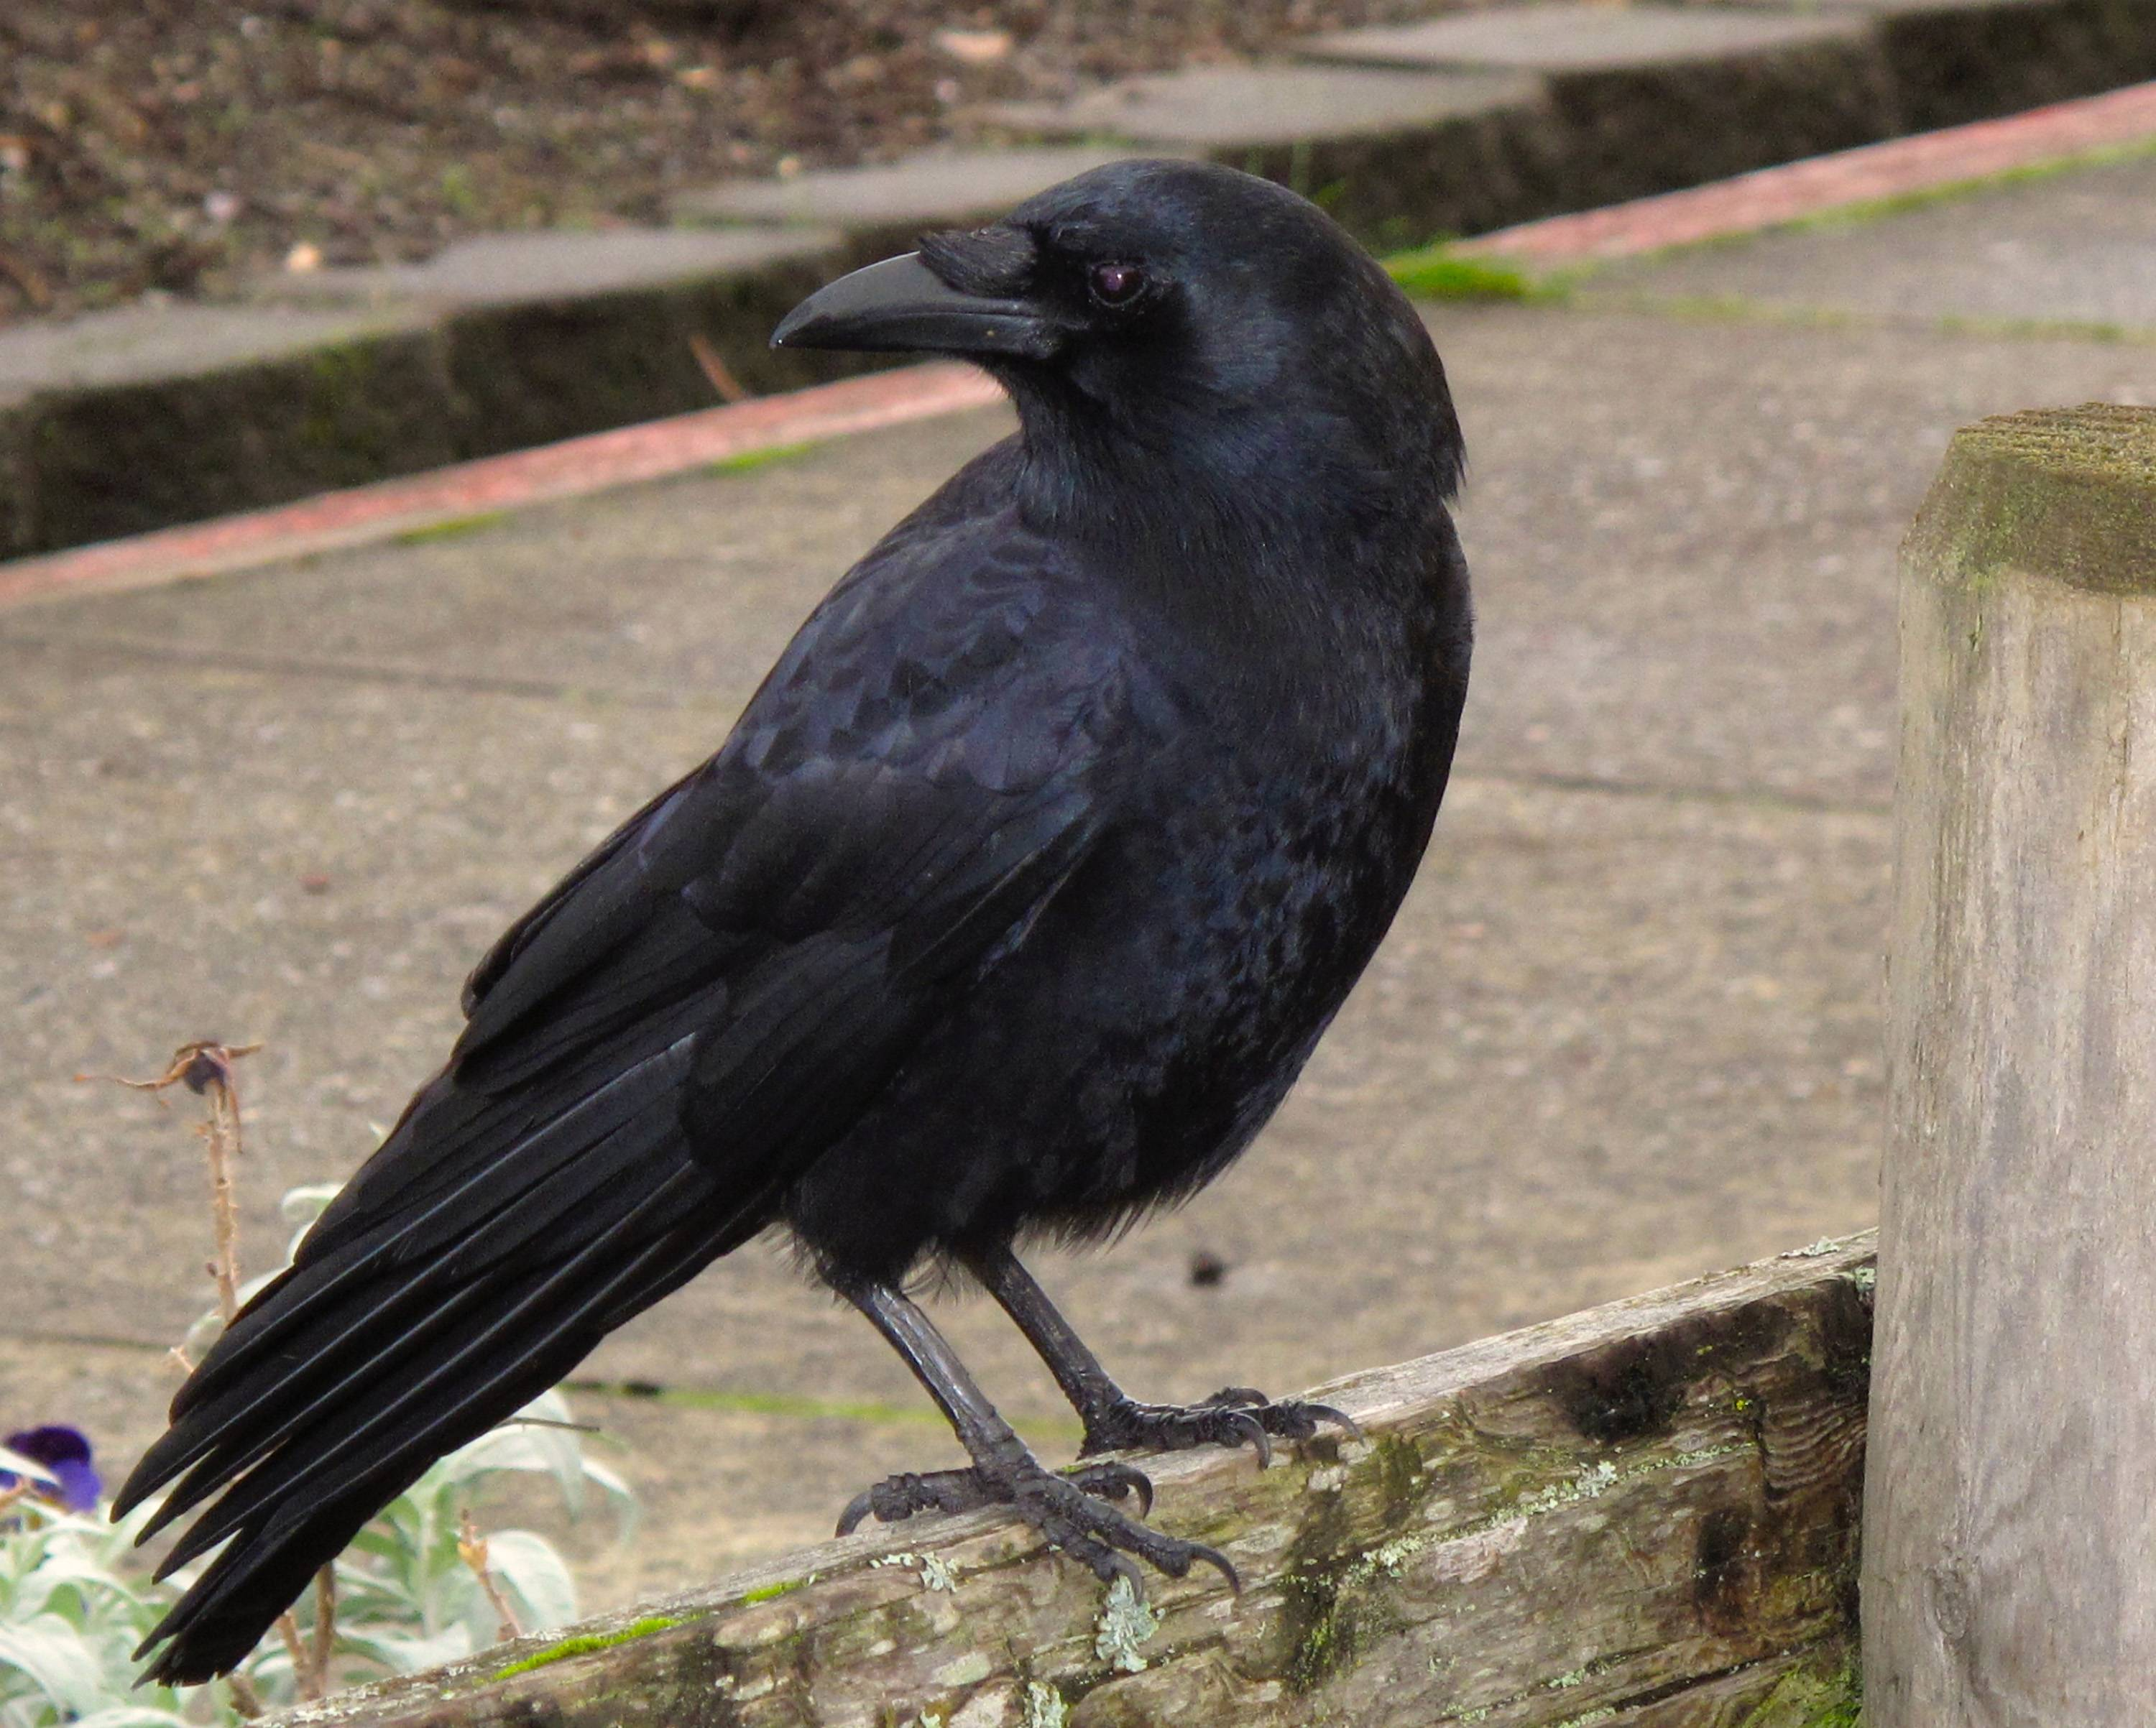 A crow arrives on a fence to join a number of others near a restaurant in Langley, Wash., responding in part to some smartphone playback. The prevalence of playback -- playing recorded birdcalls on smartphones or other mobile devices -- is increasing rapidly as their prices continue to fall. That concerns many bird-watchers who believe it can stress territorial birds, especially if overdone.